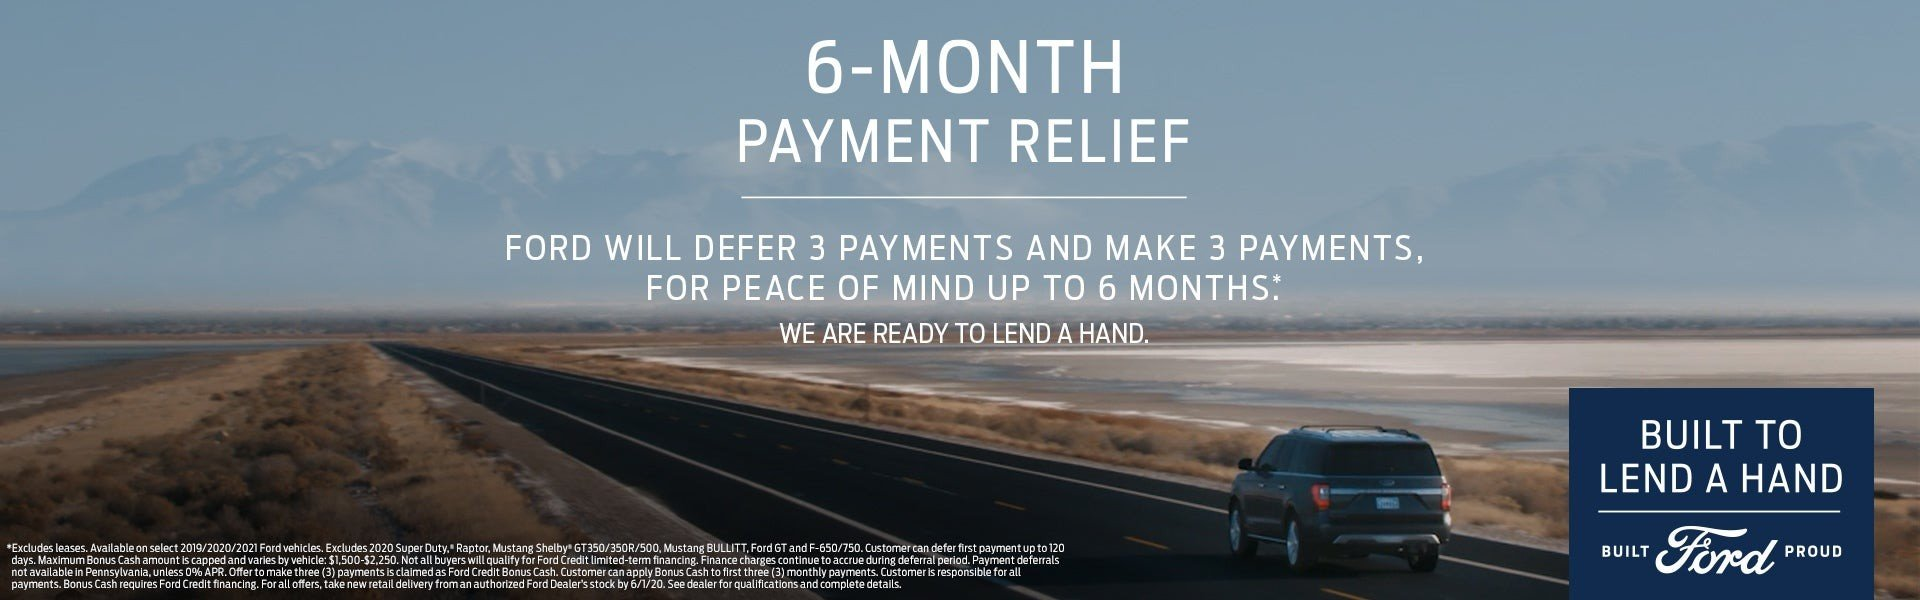 6 Months Payment Relief 6-2-2020